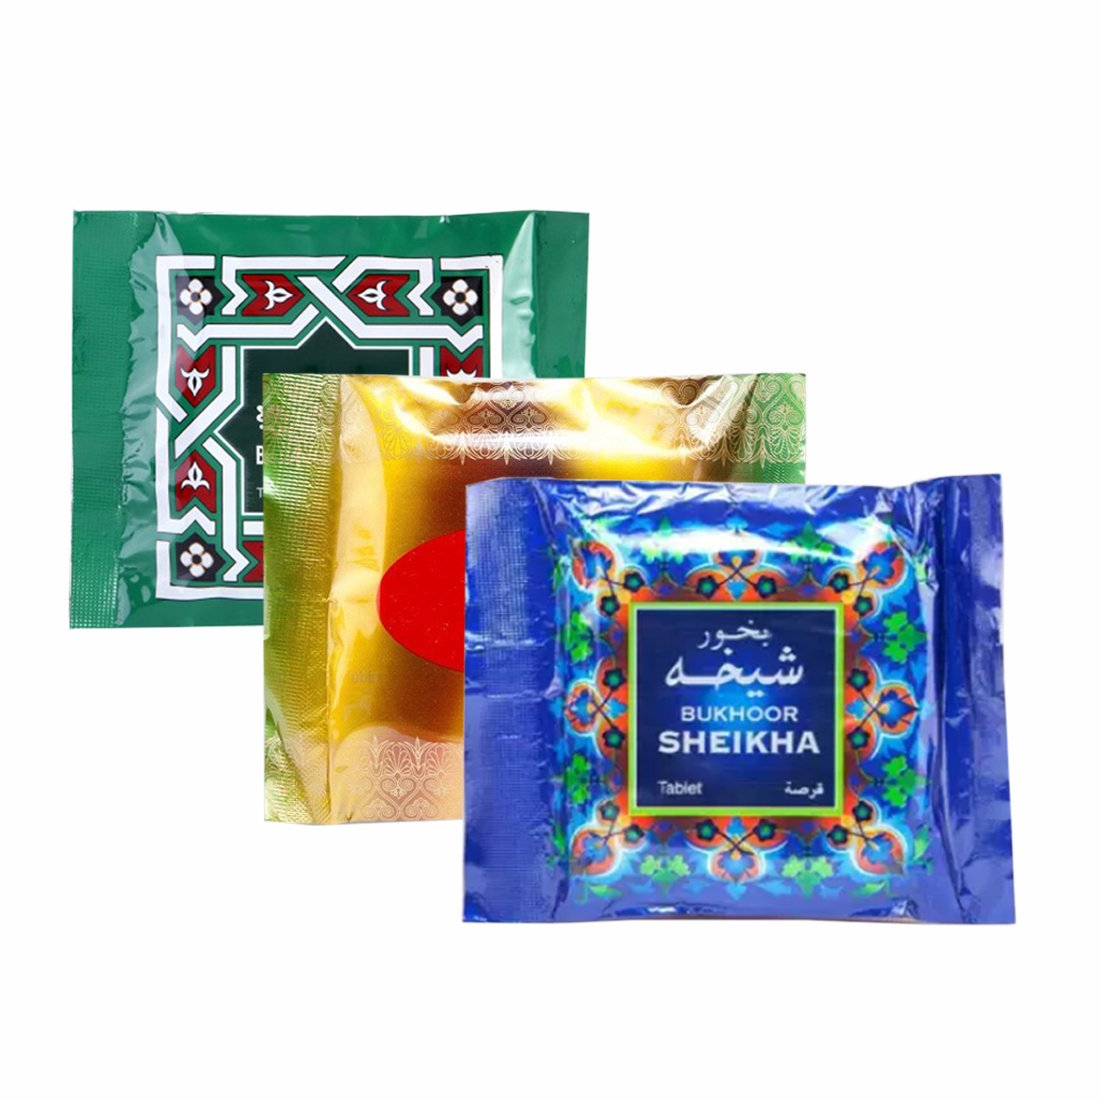 Al Haramain Bukhoor Sheikha, Sedra & Watani Bakhoor Burners Fragrance Paste Pack Combo of 3